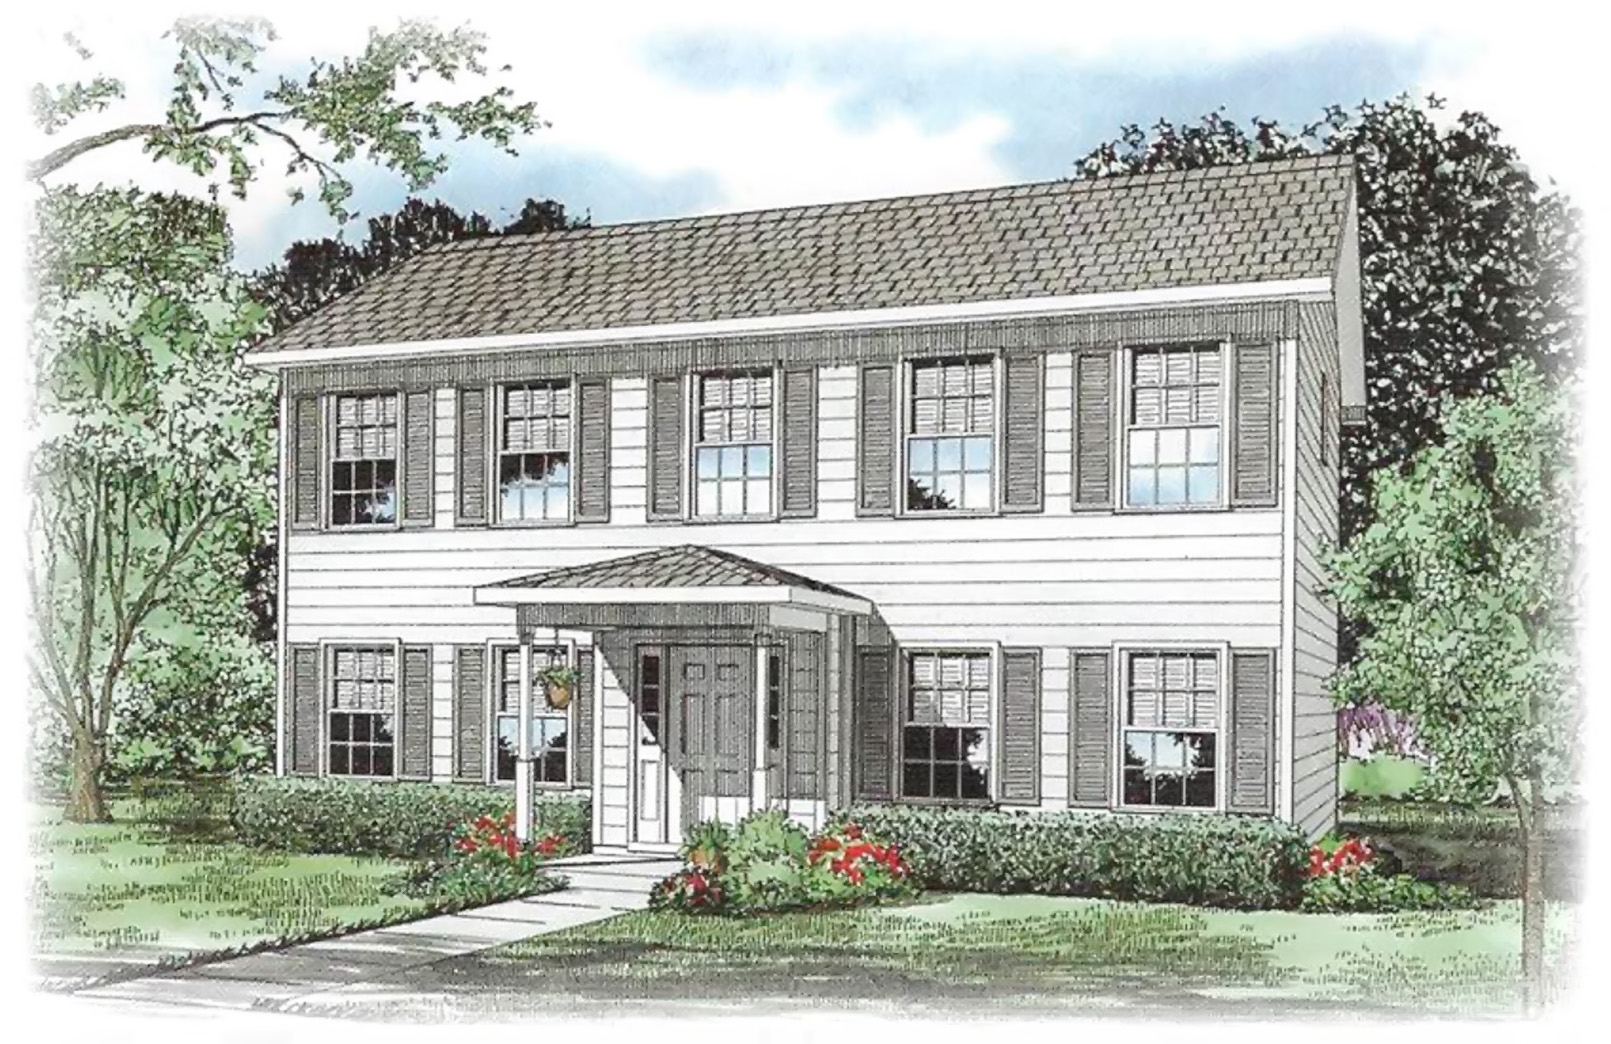 Manchester Pennyworth Homes Tallahassee Home Builder